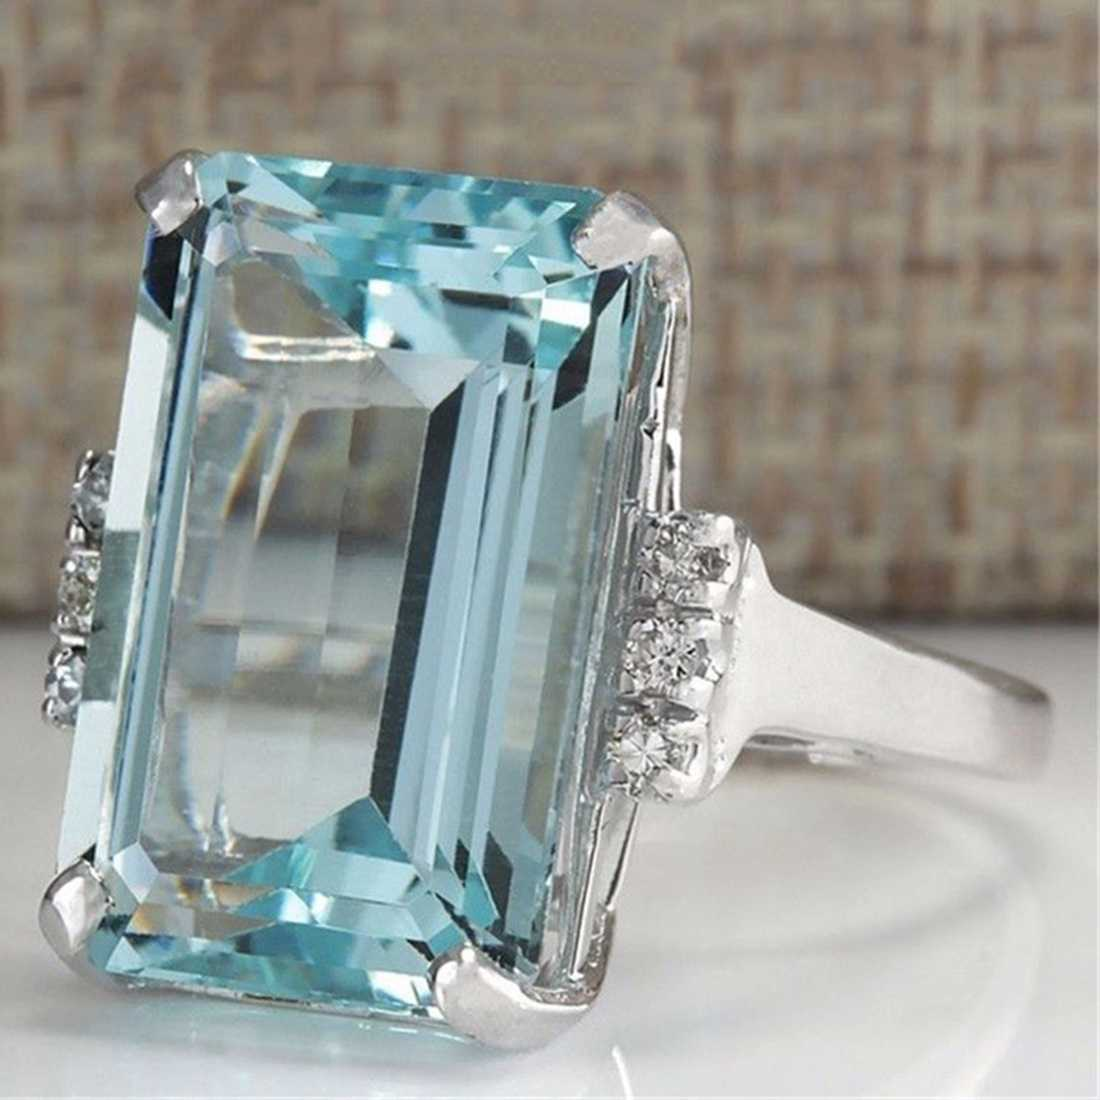 Jiayiqi 2018 Top Quality Square Blue Crystal Cubic Zirconia Wedding Ring Silver Color Full Sizes Wholesale